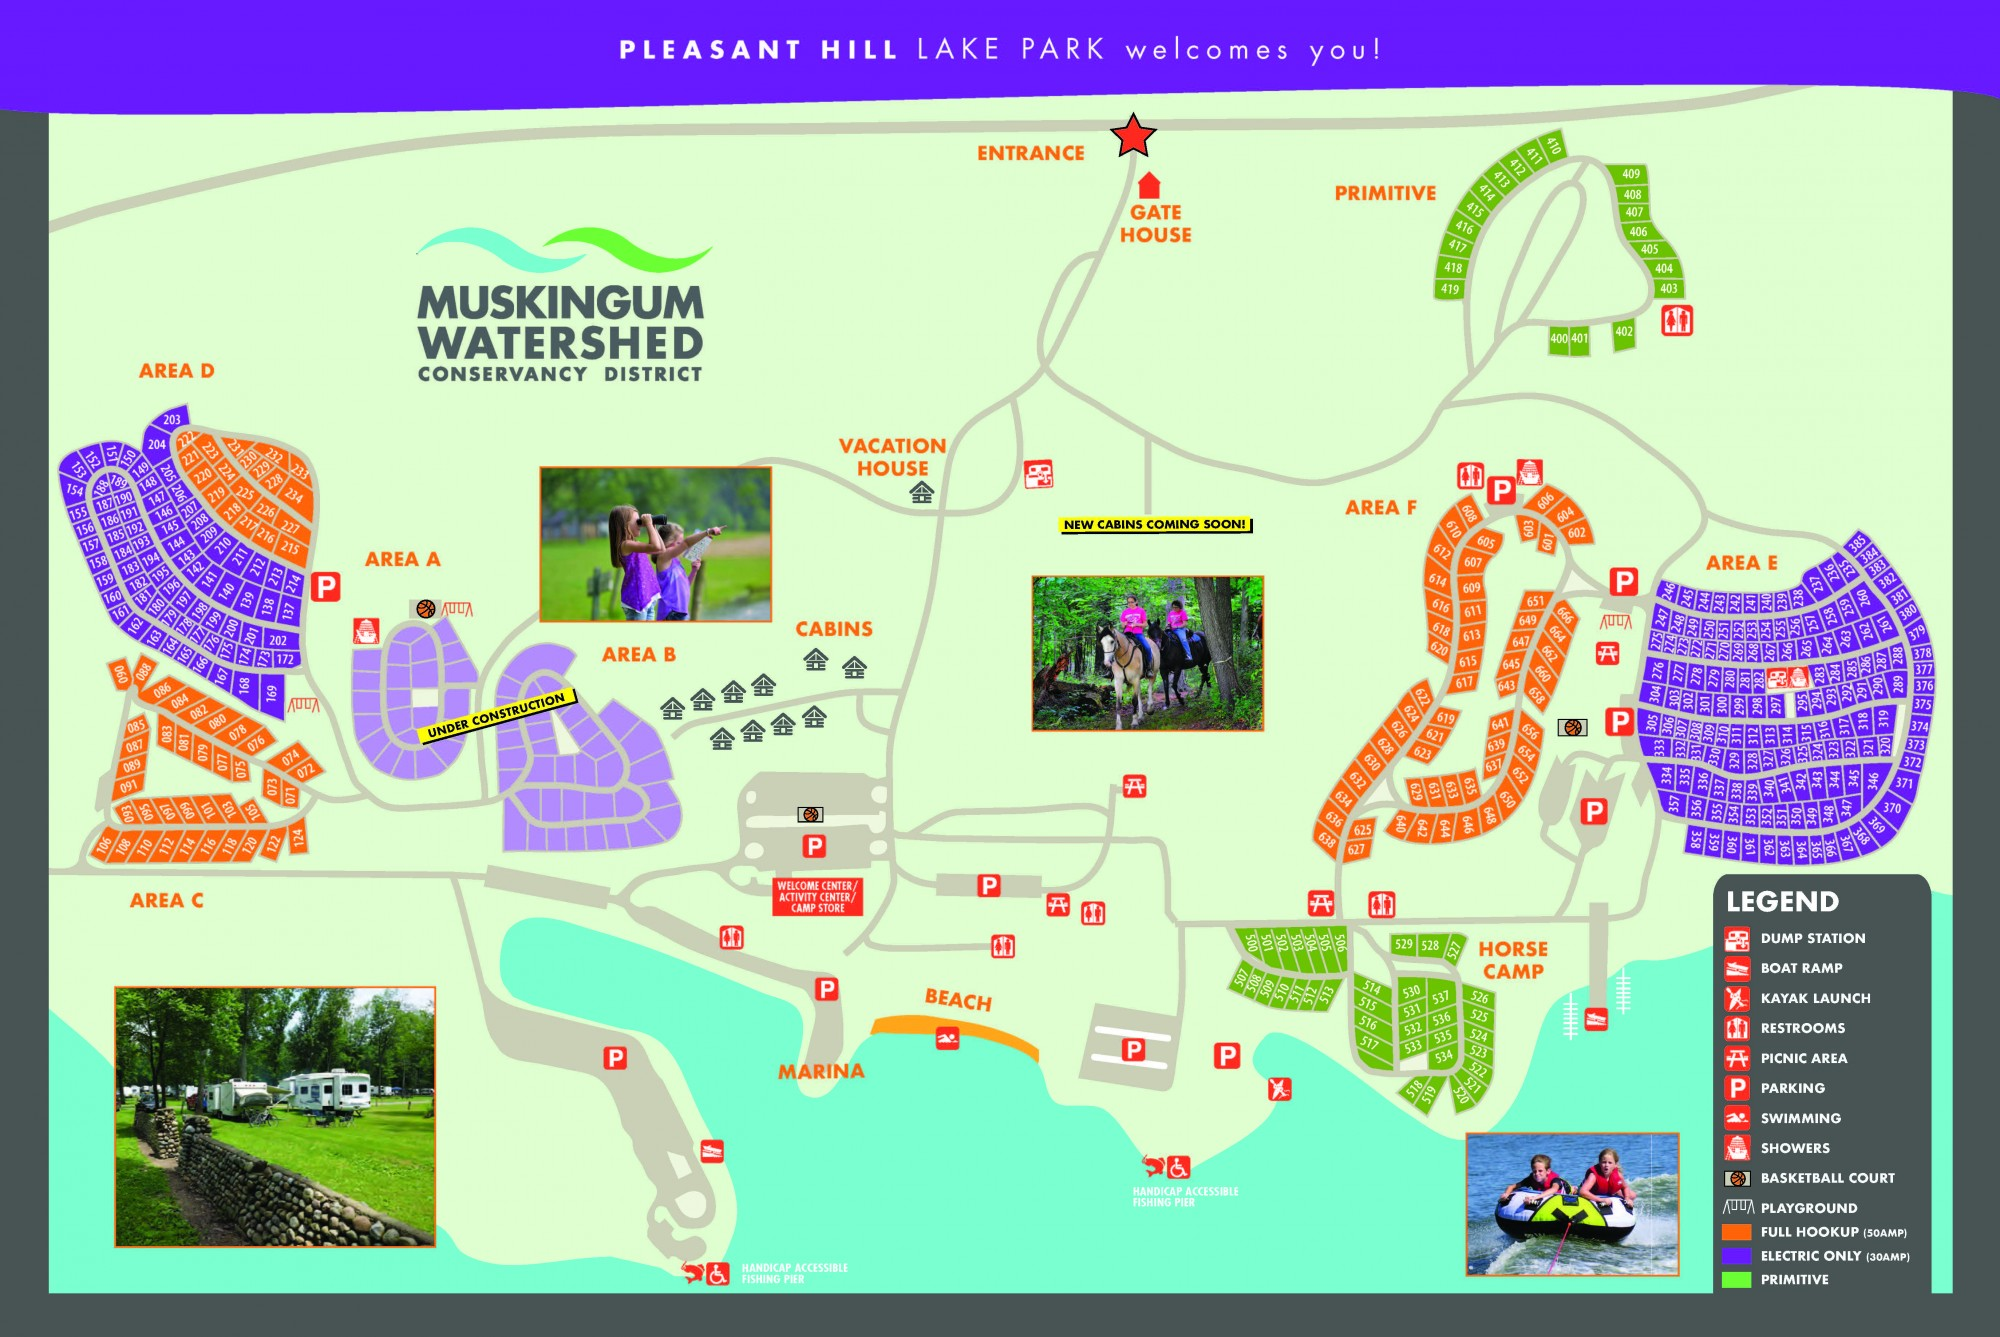 Perrysville Ohio Map.Maps And Locations Pleasant Hill Lake Park Ohio